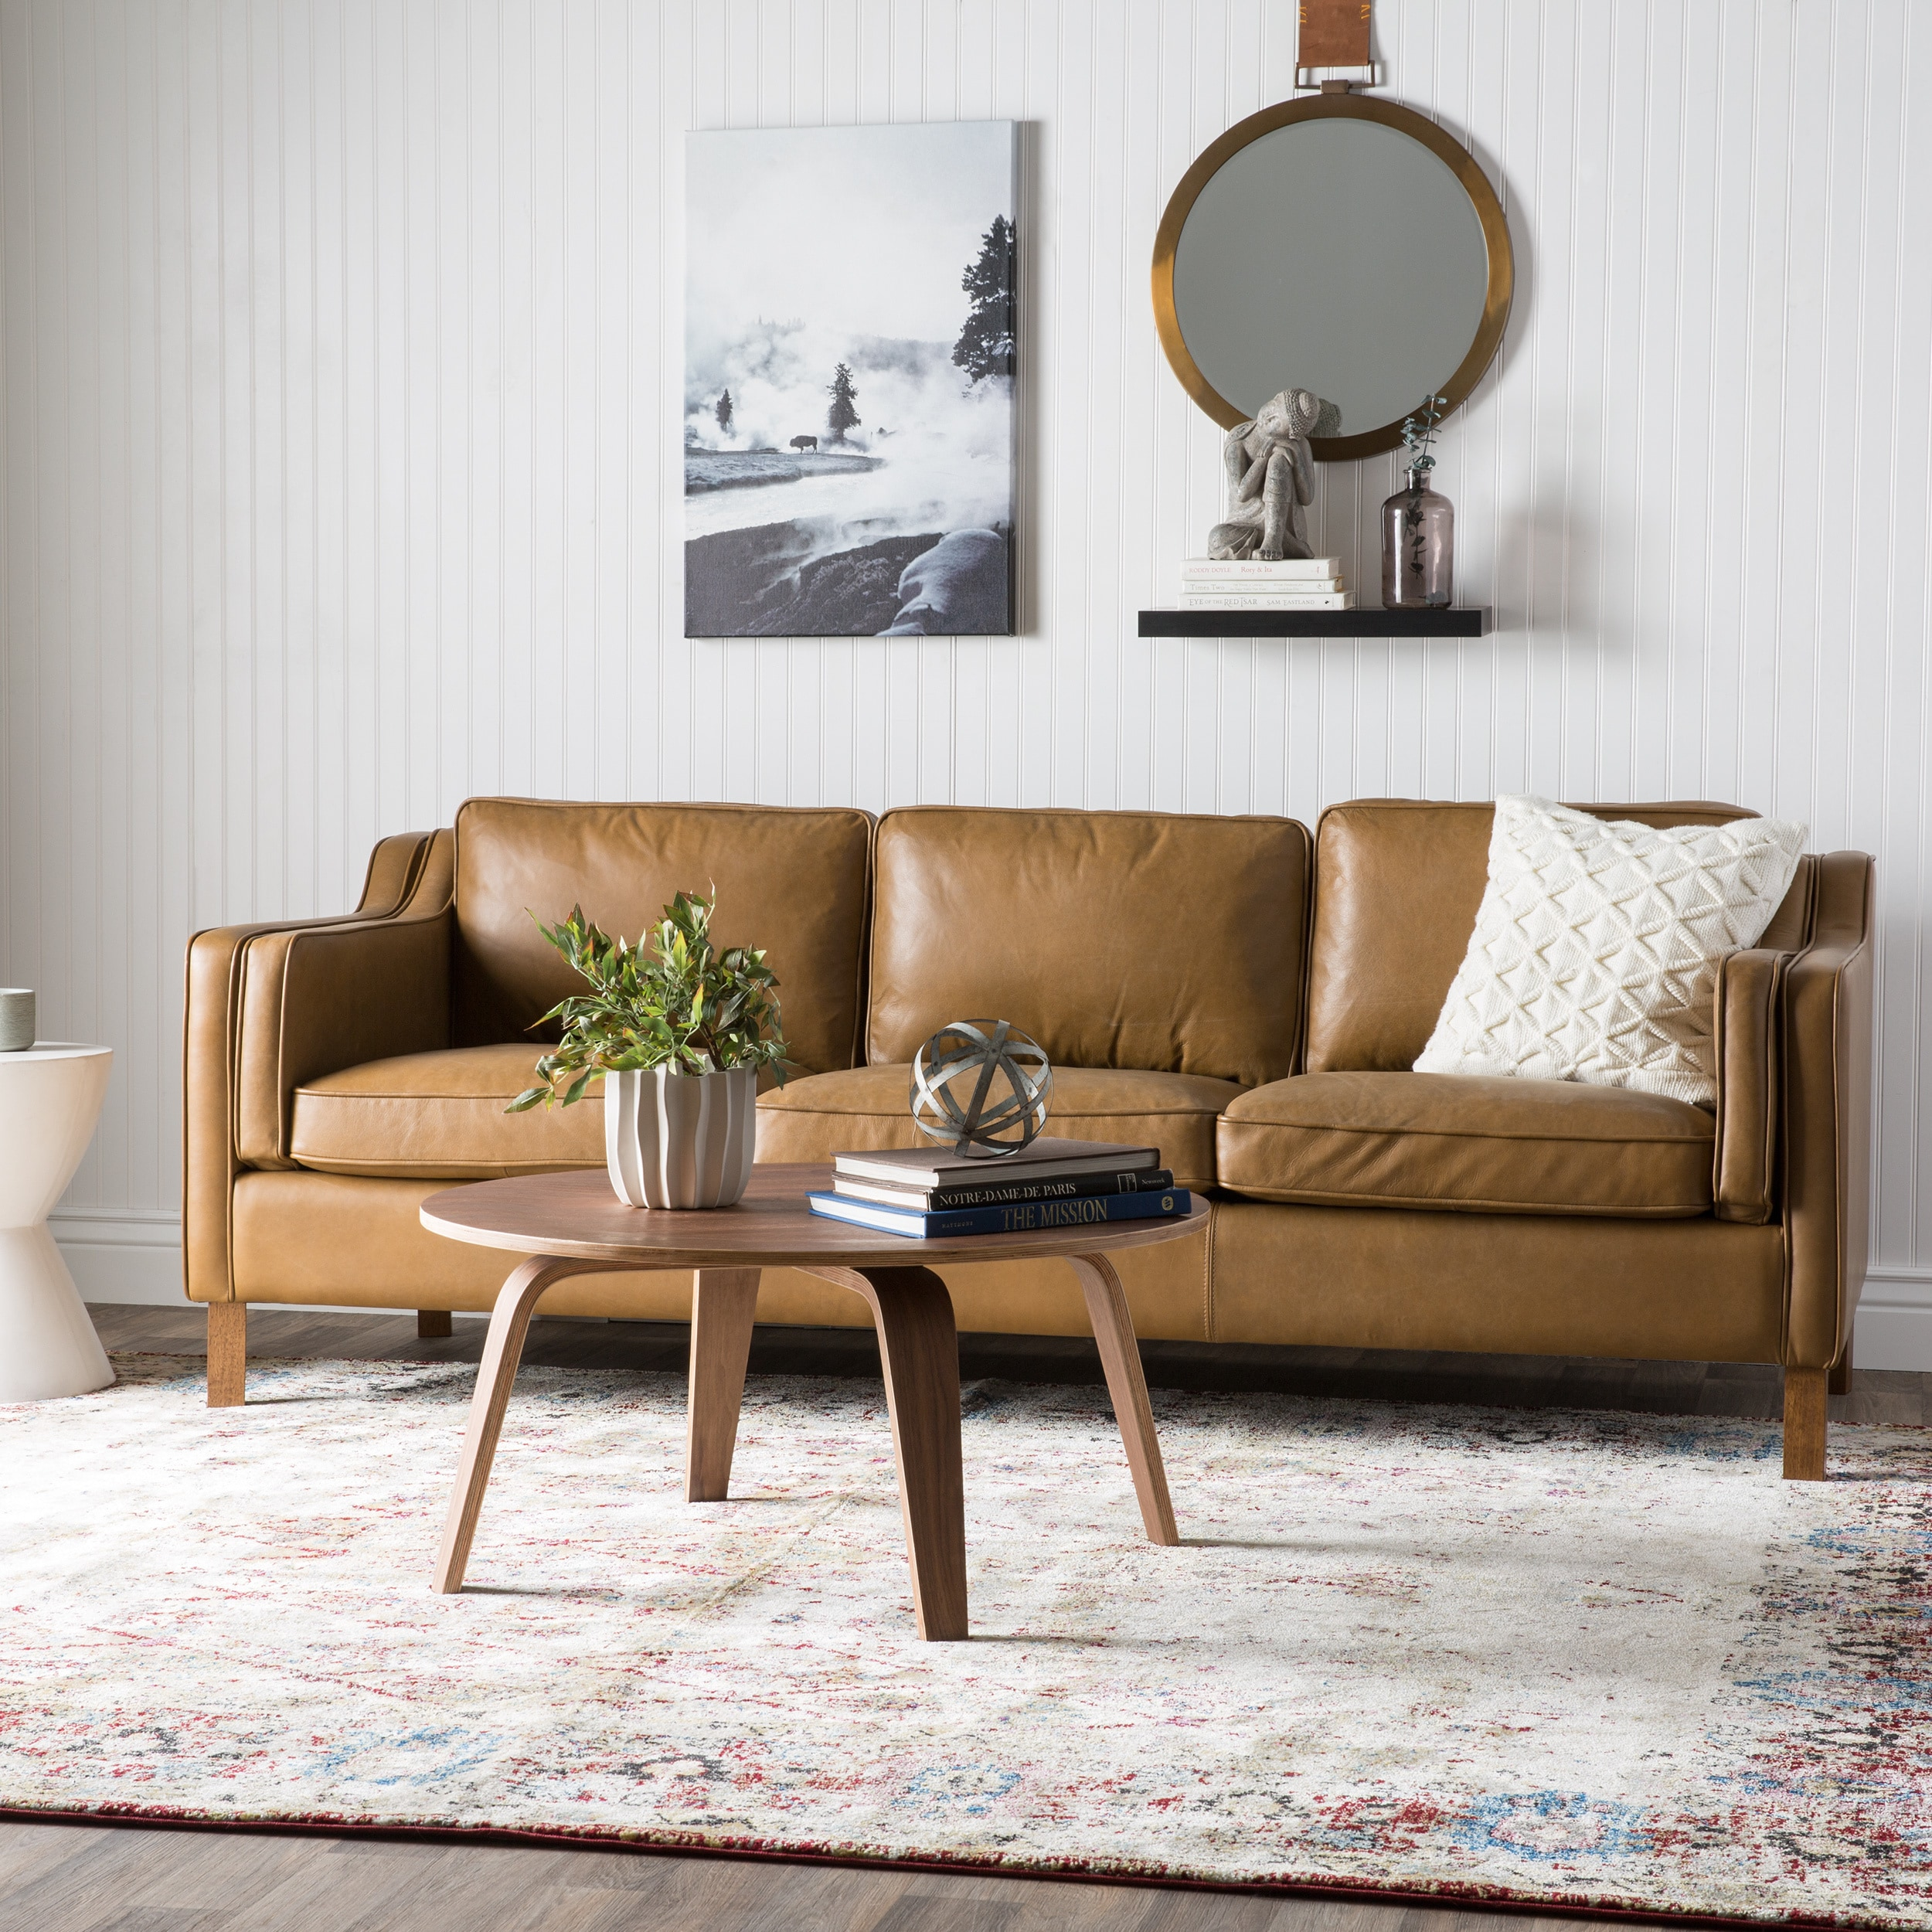 Canapé But Broadway Strick Bolton Canape 86 Inch Oxford Honey Leather Sofa